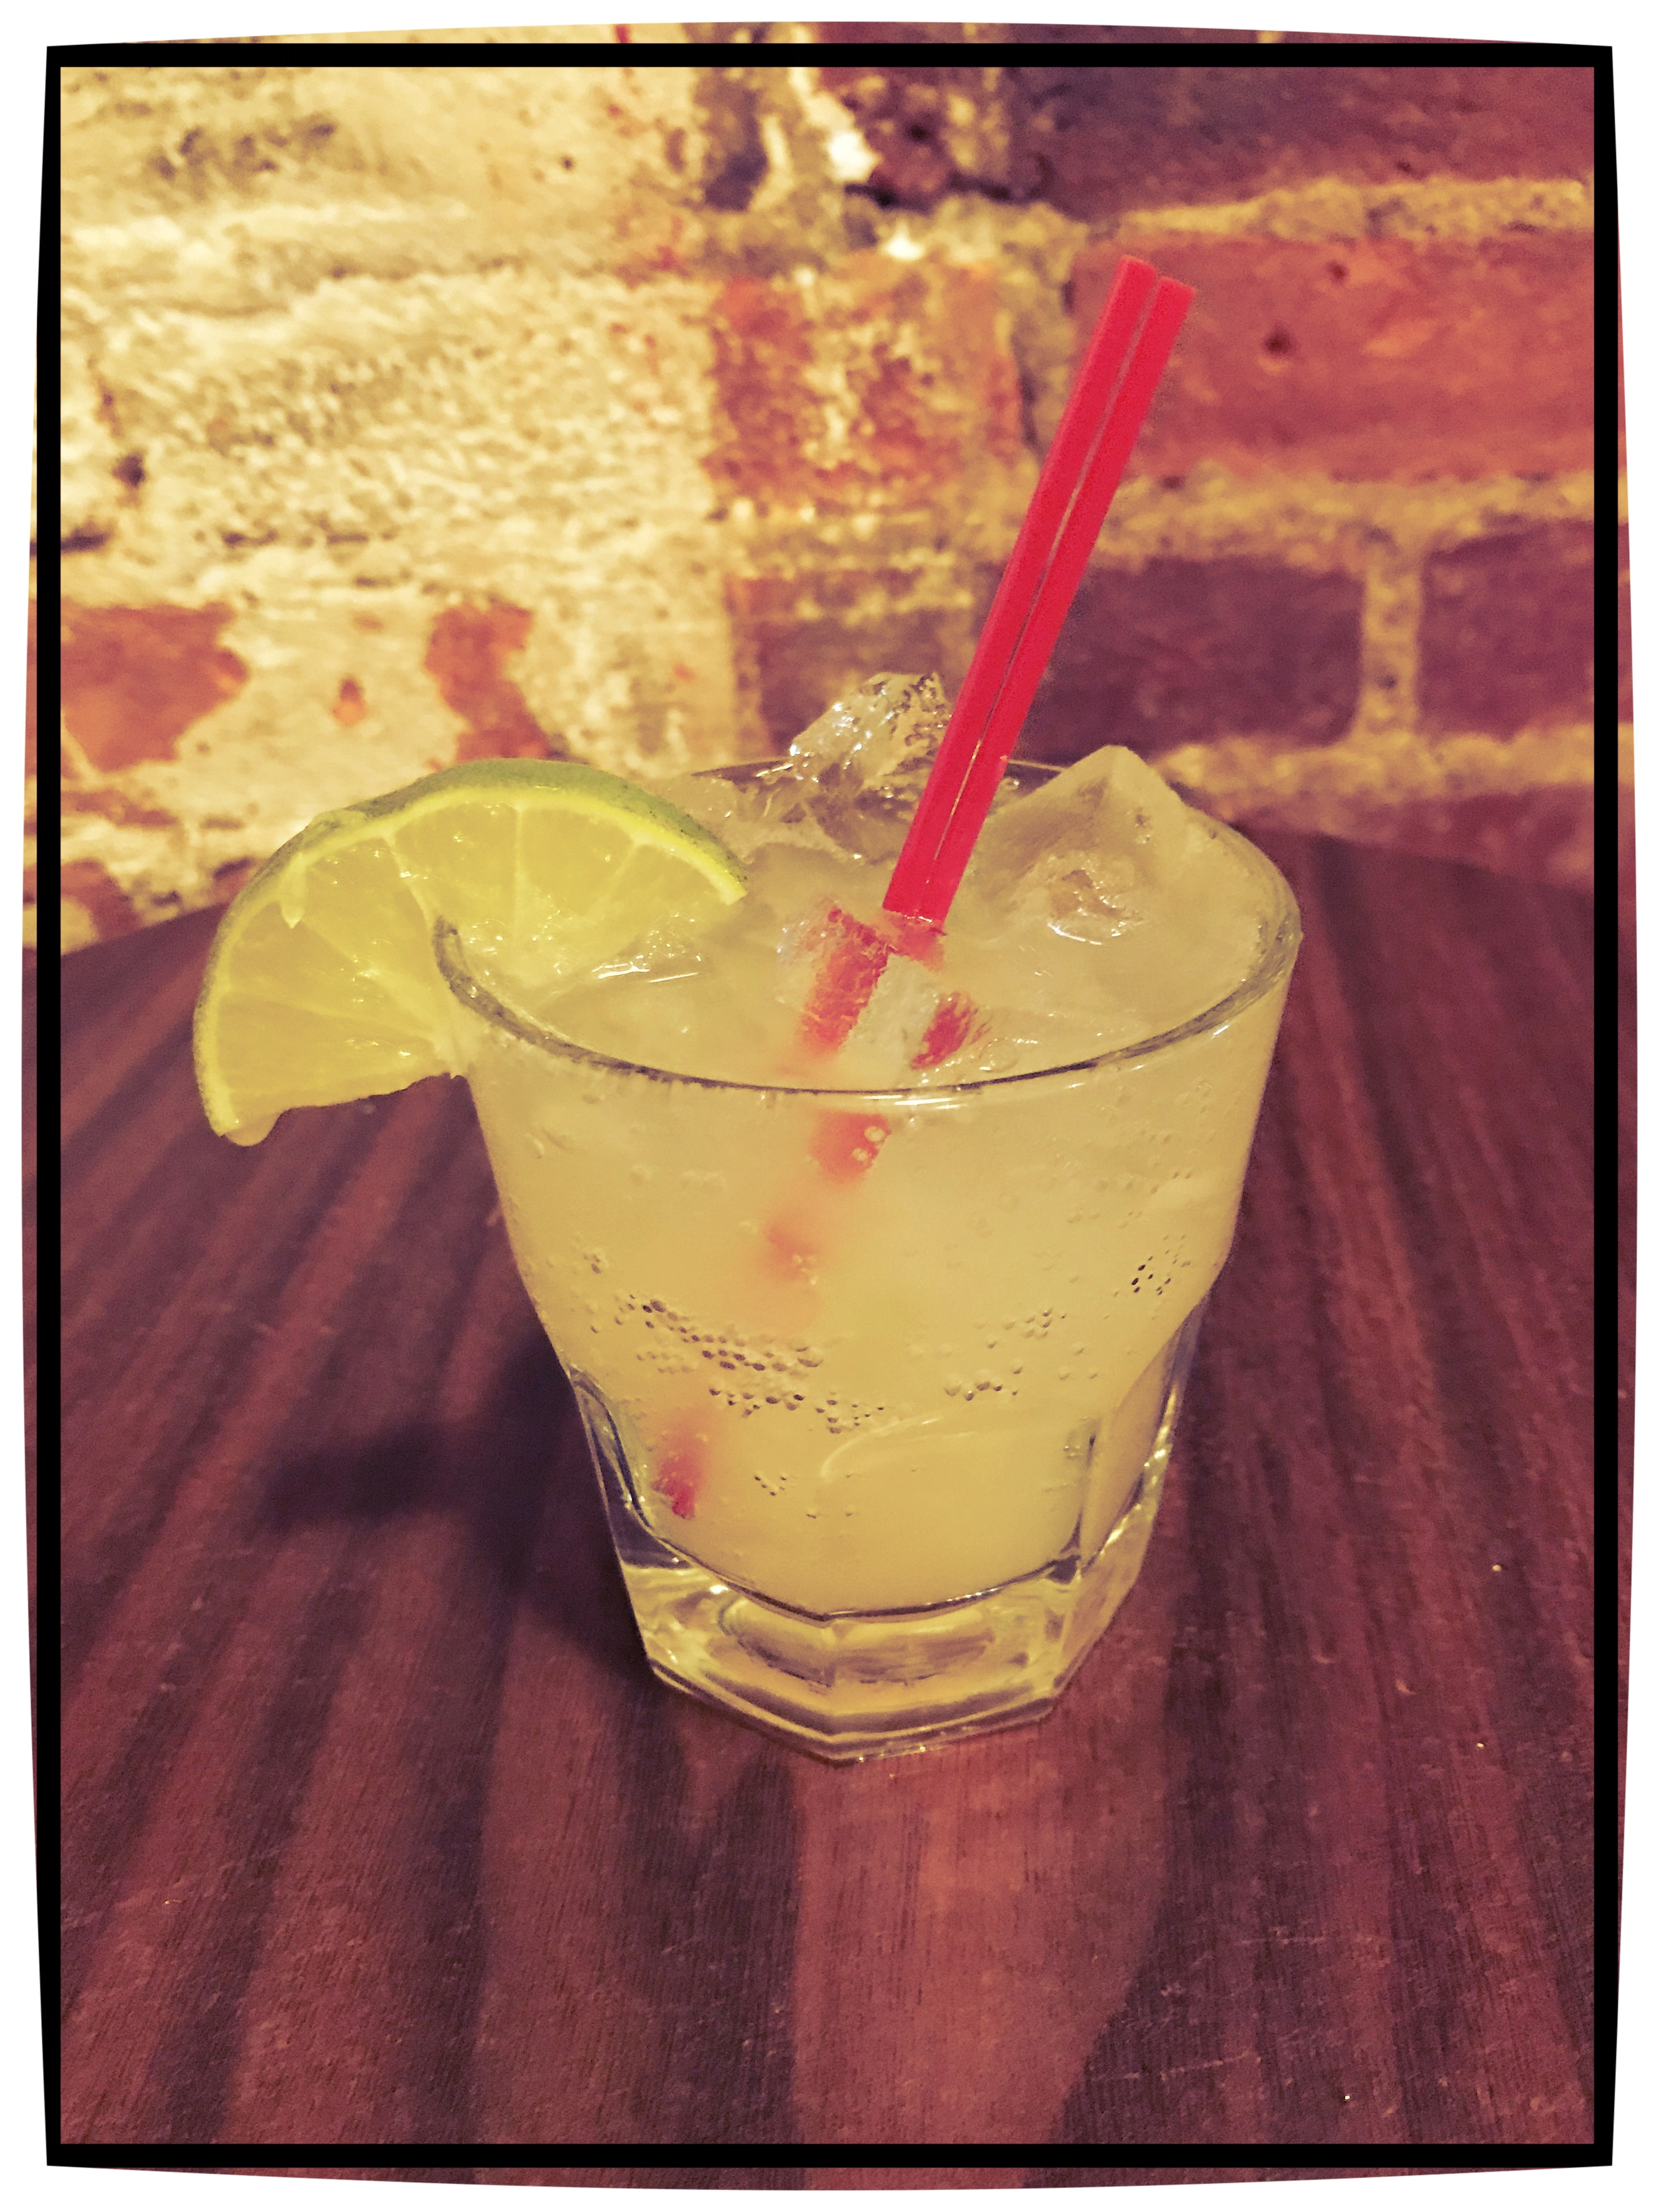 Ralph's Grandma $11 - Aviation Gin, Elderflower Liqueur,Hint of Sour, Dash of Grapefruit, Burst of Soda